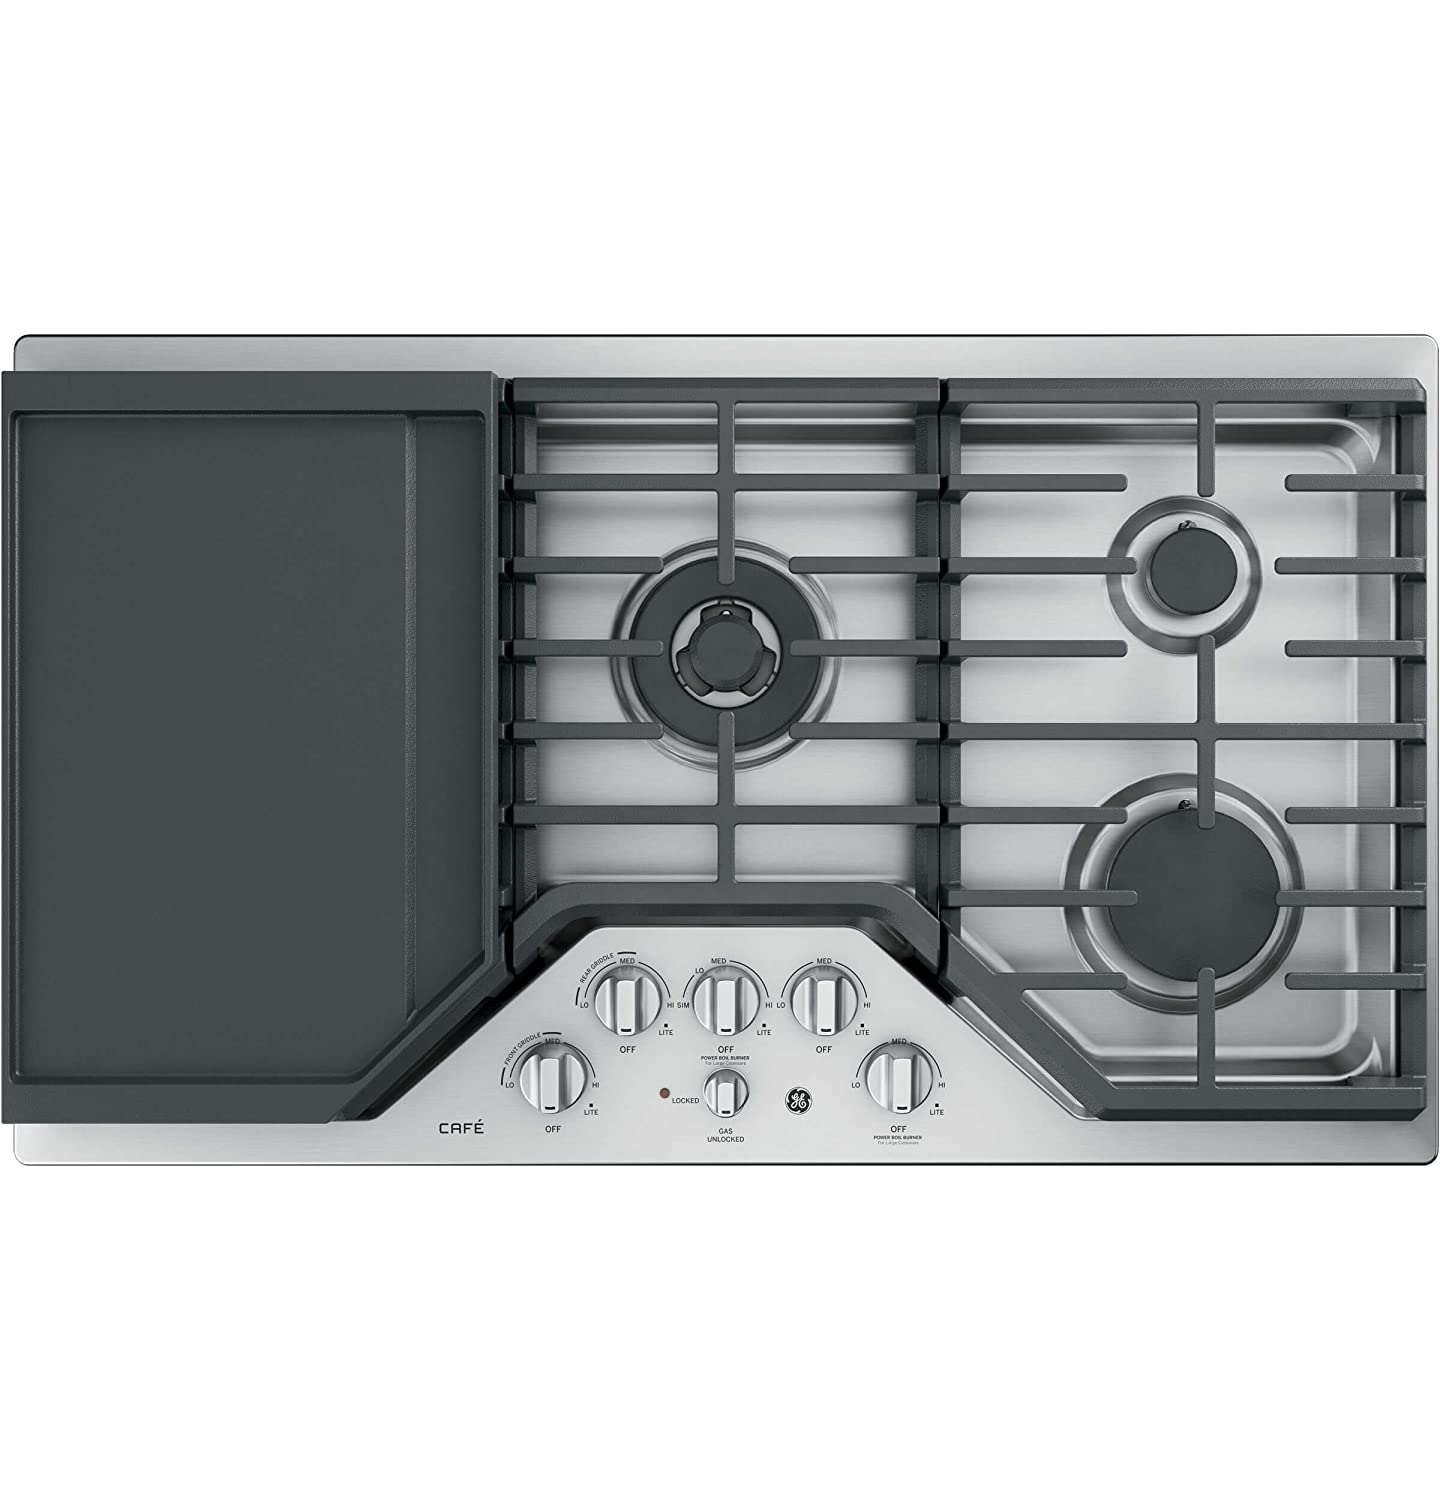 GE Cafe CGP9536SLSS 36 Inch Natural Gas Sealed Burner Style Cooktop with 5 Burners in Stainless Steel G.E. Café